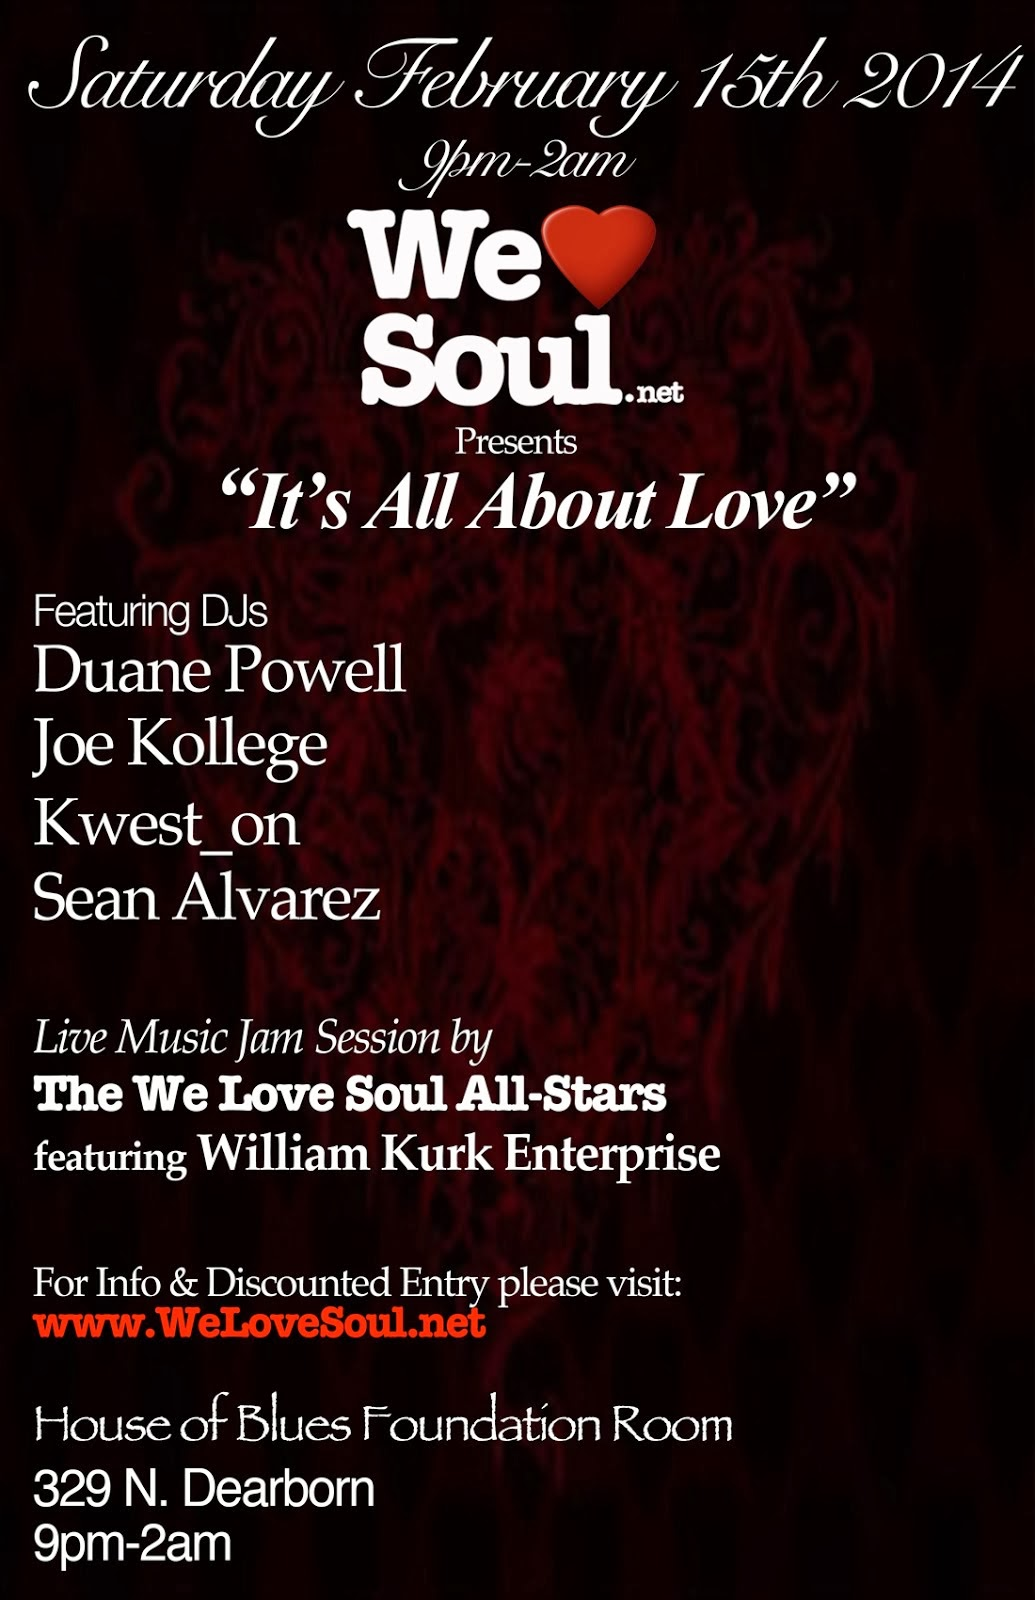 Sat Feb 15: We Love Soul presents It's All About Love